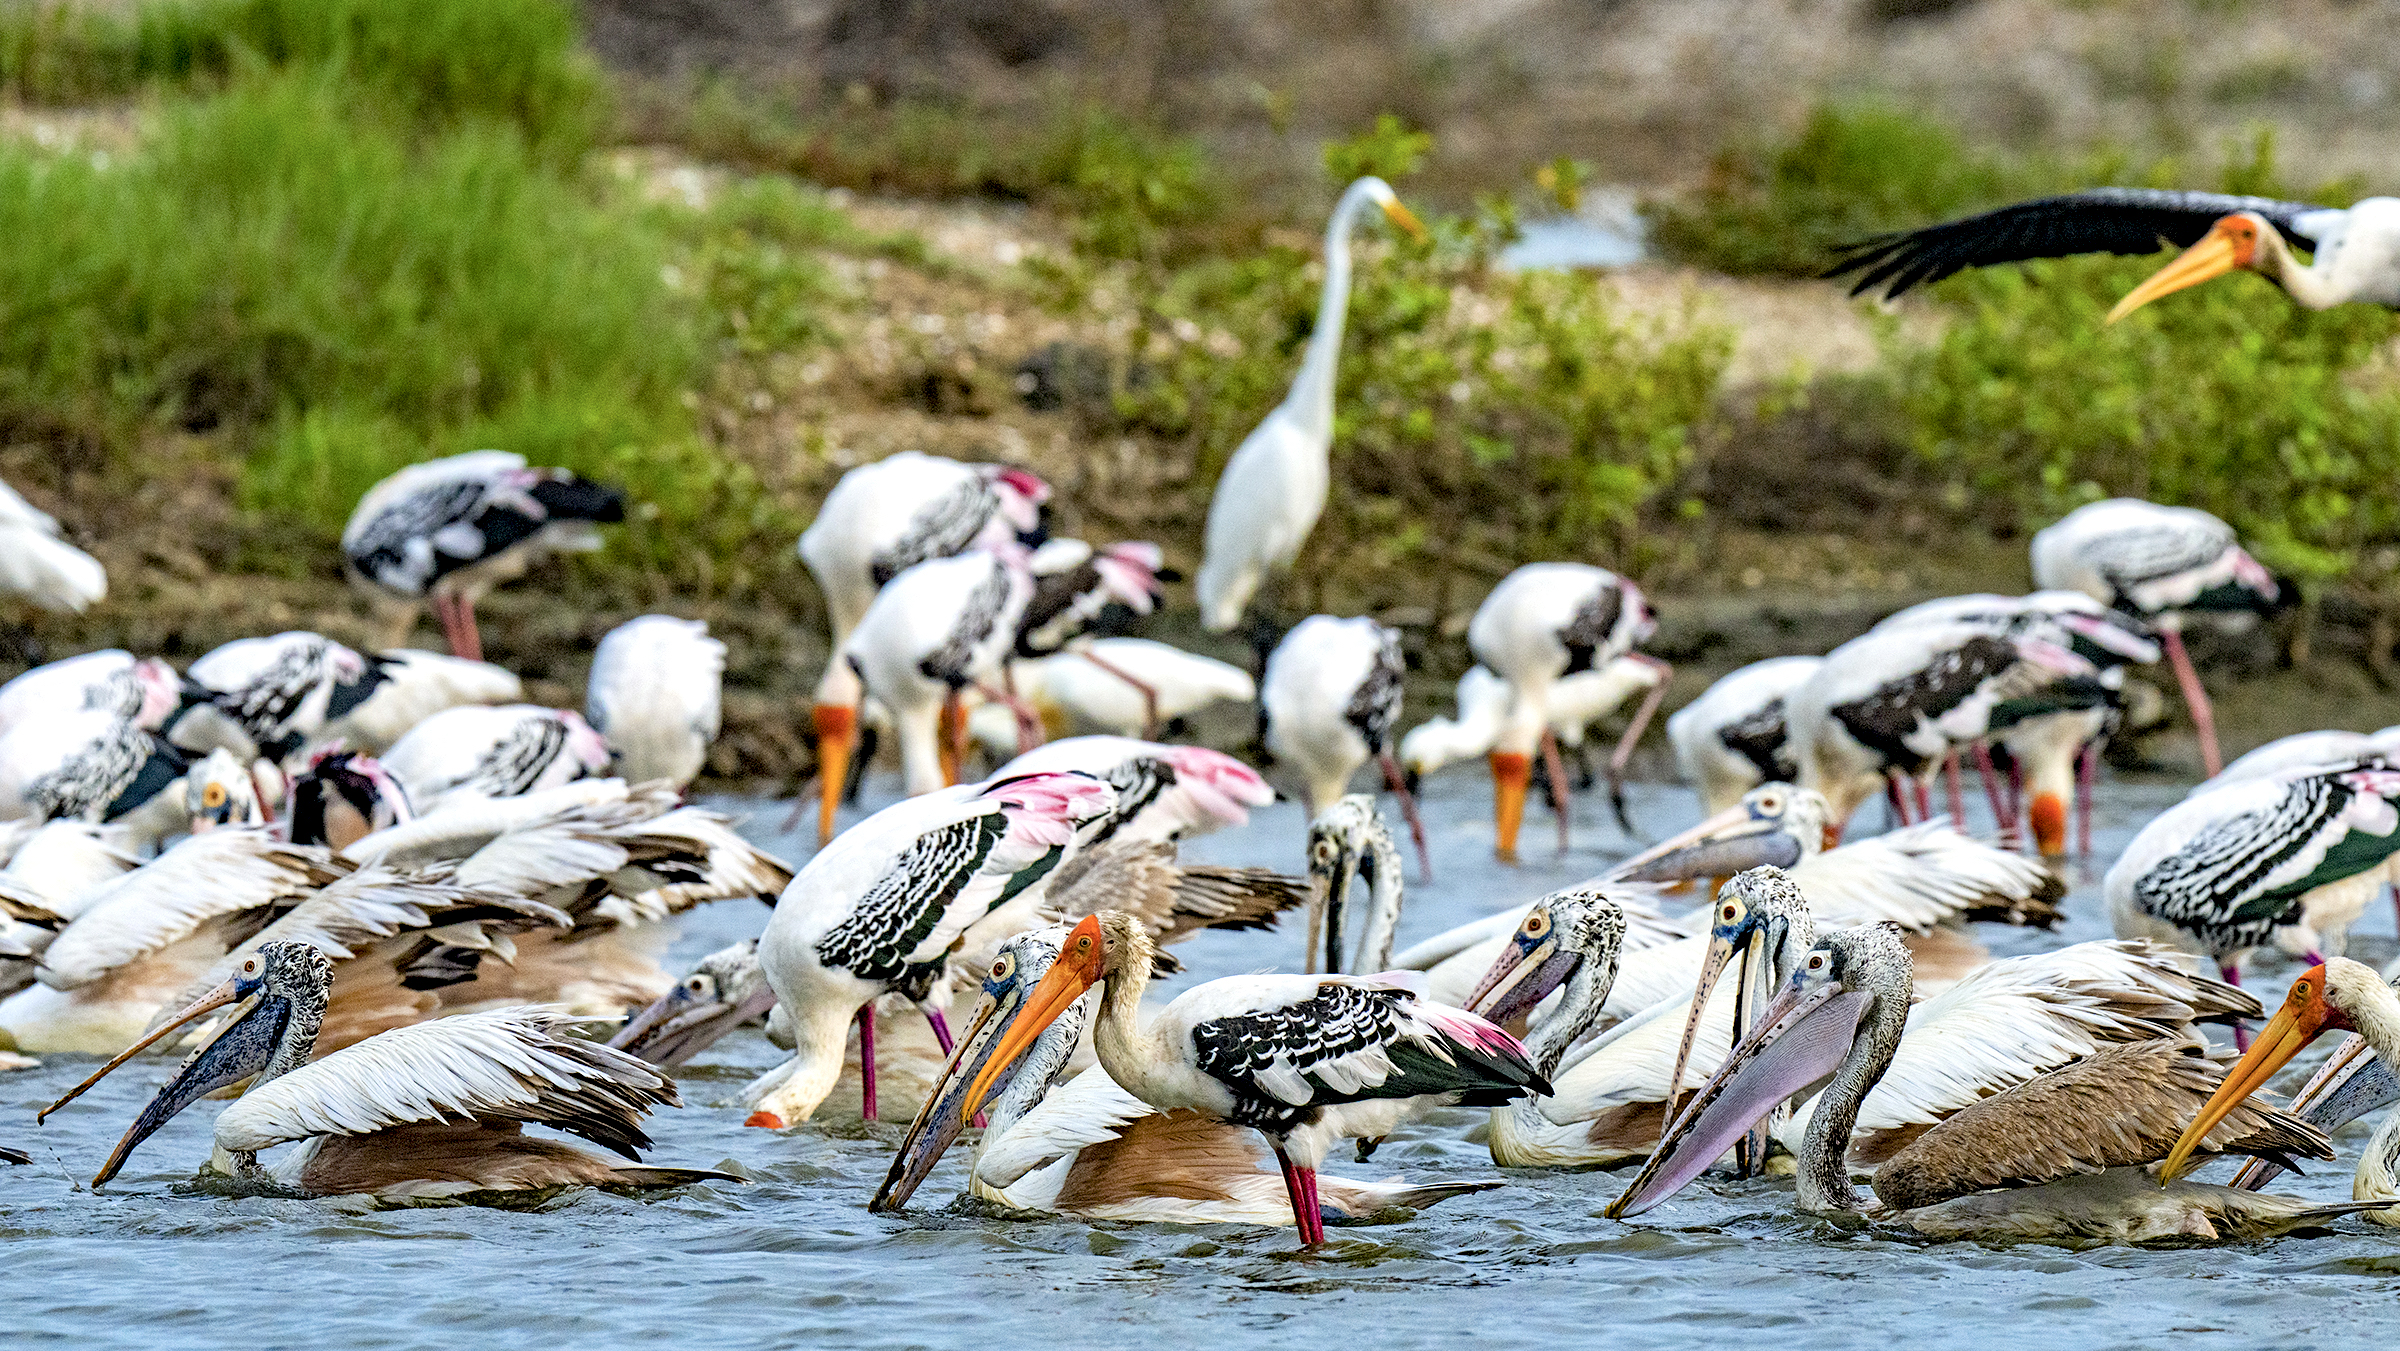 Painted storks, spot-billed pelicans, and egrets forage at the edge of the Pallikaranai Marsh.